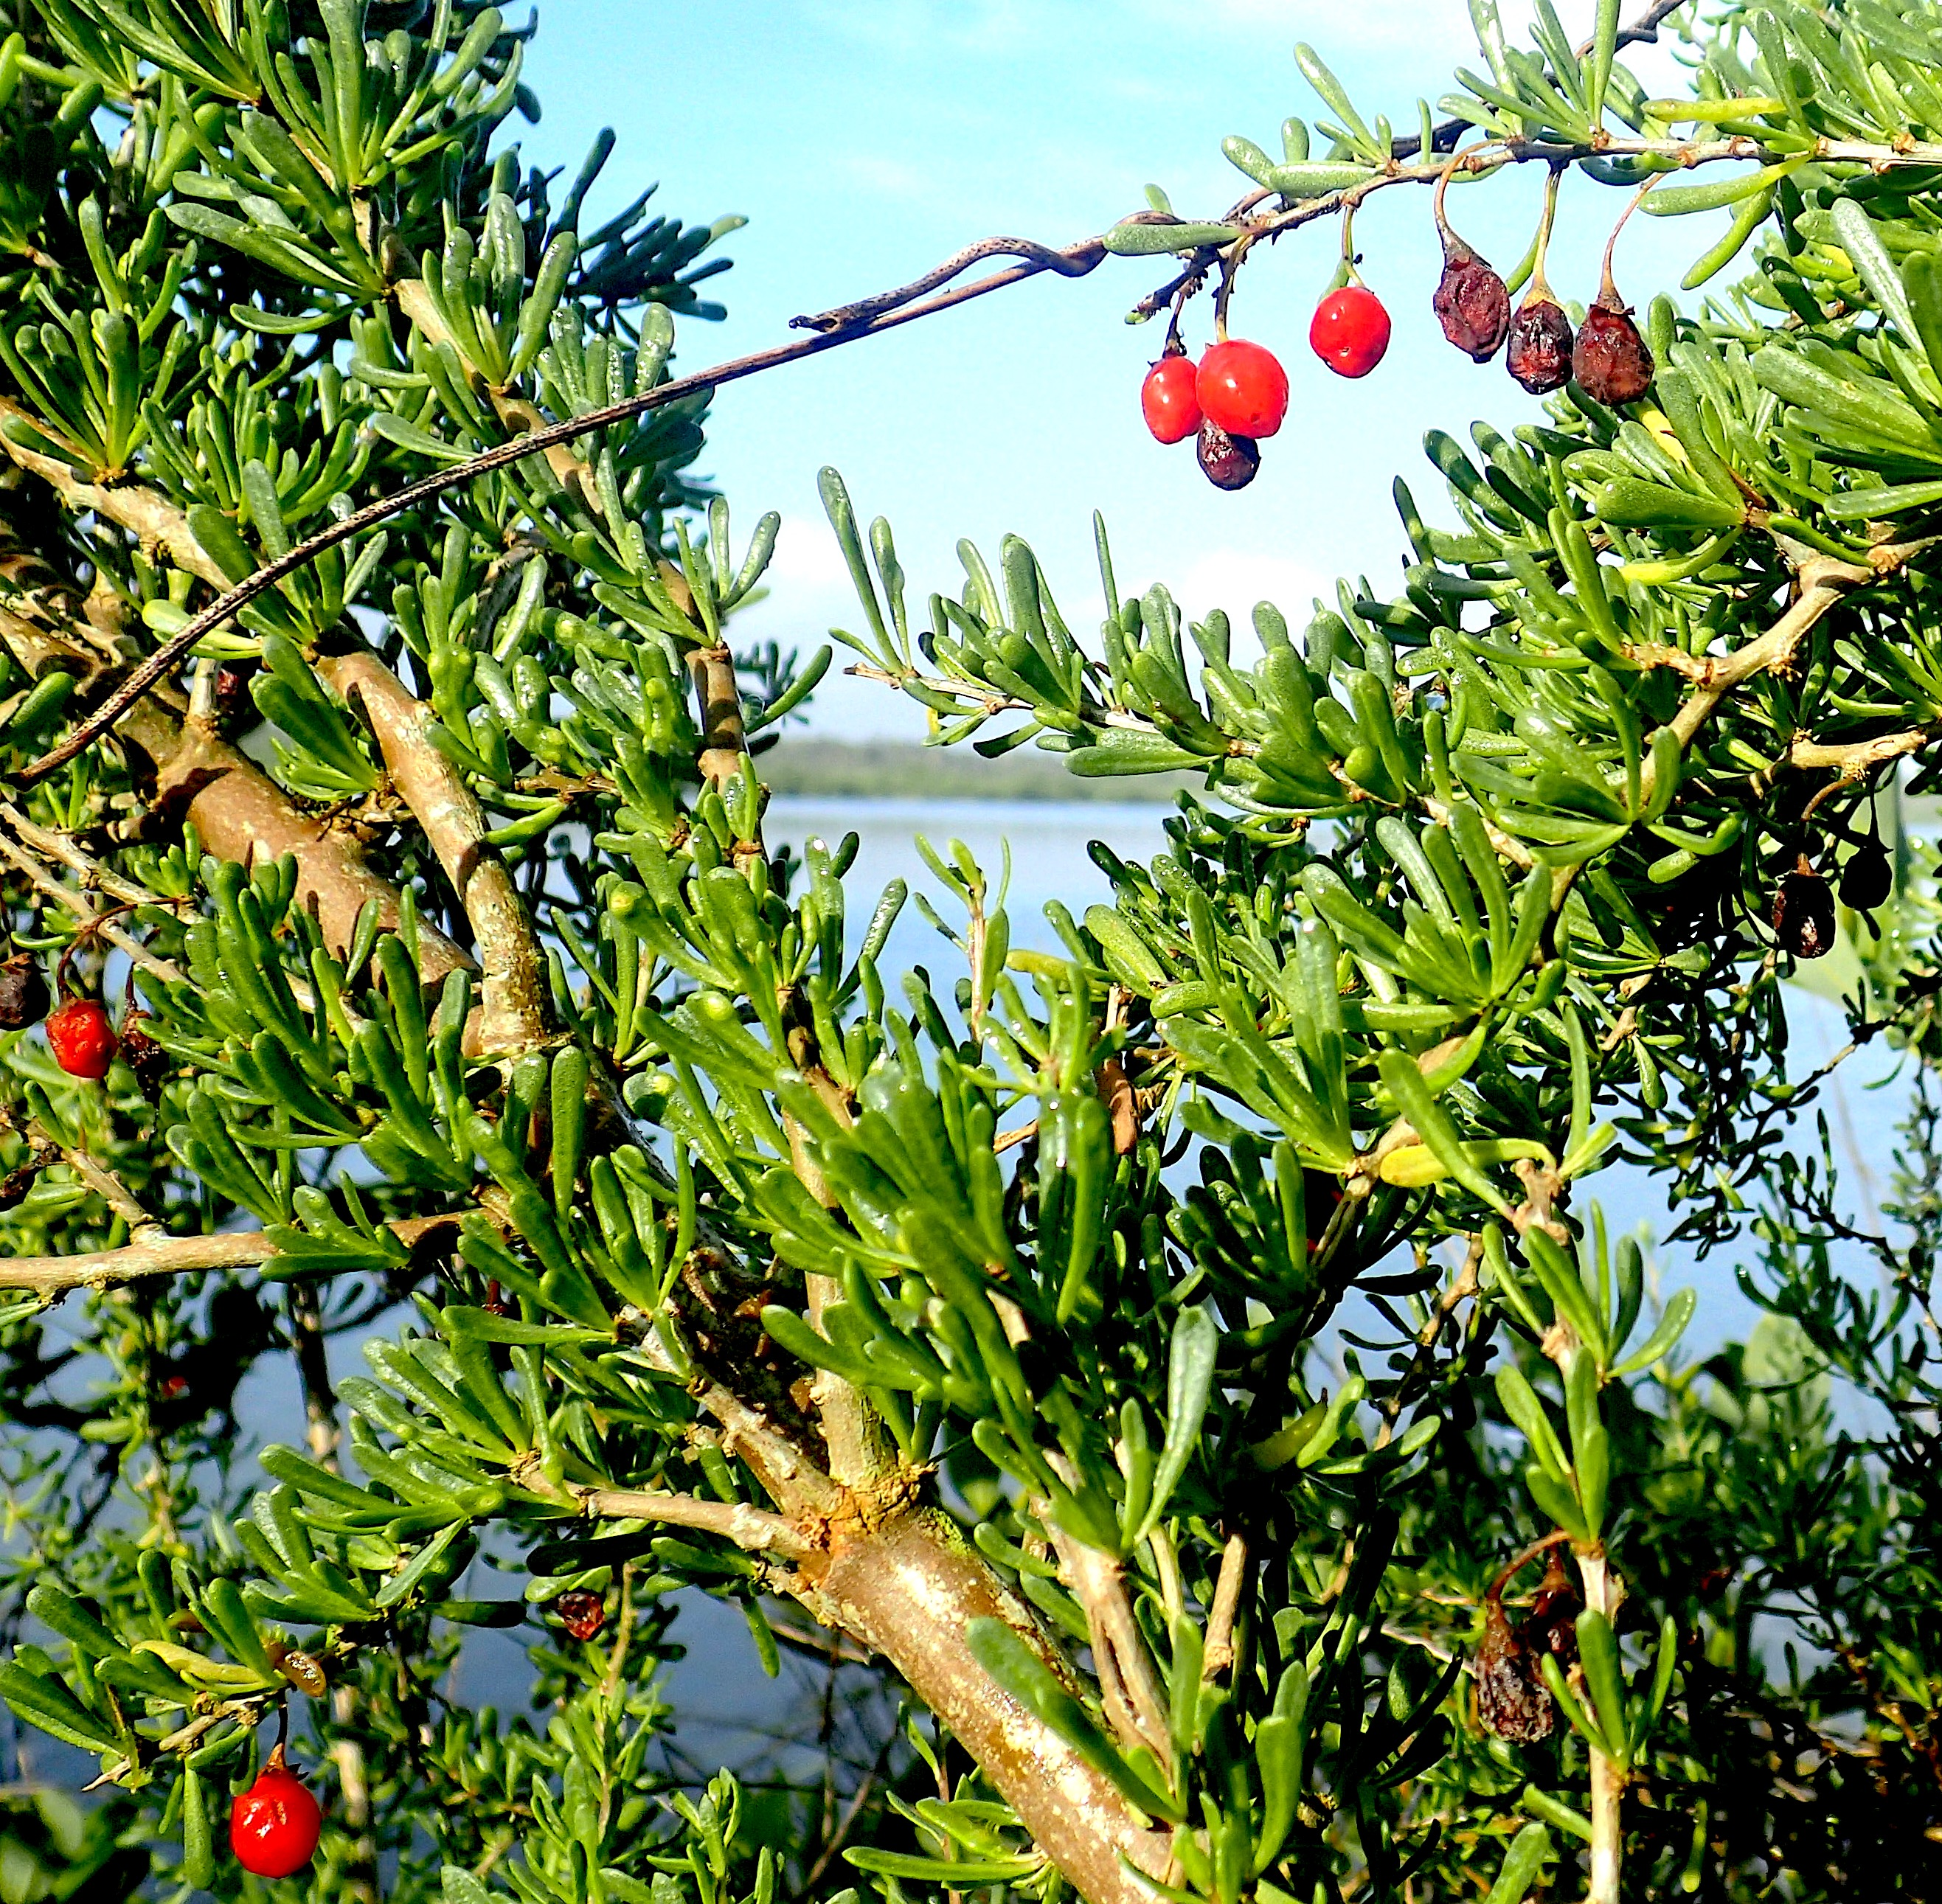 Christmasberry Wolfberry Goji Eat The Weeds And Other Things Too